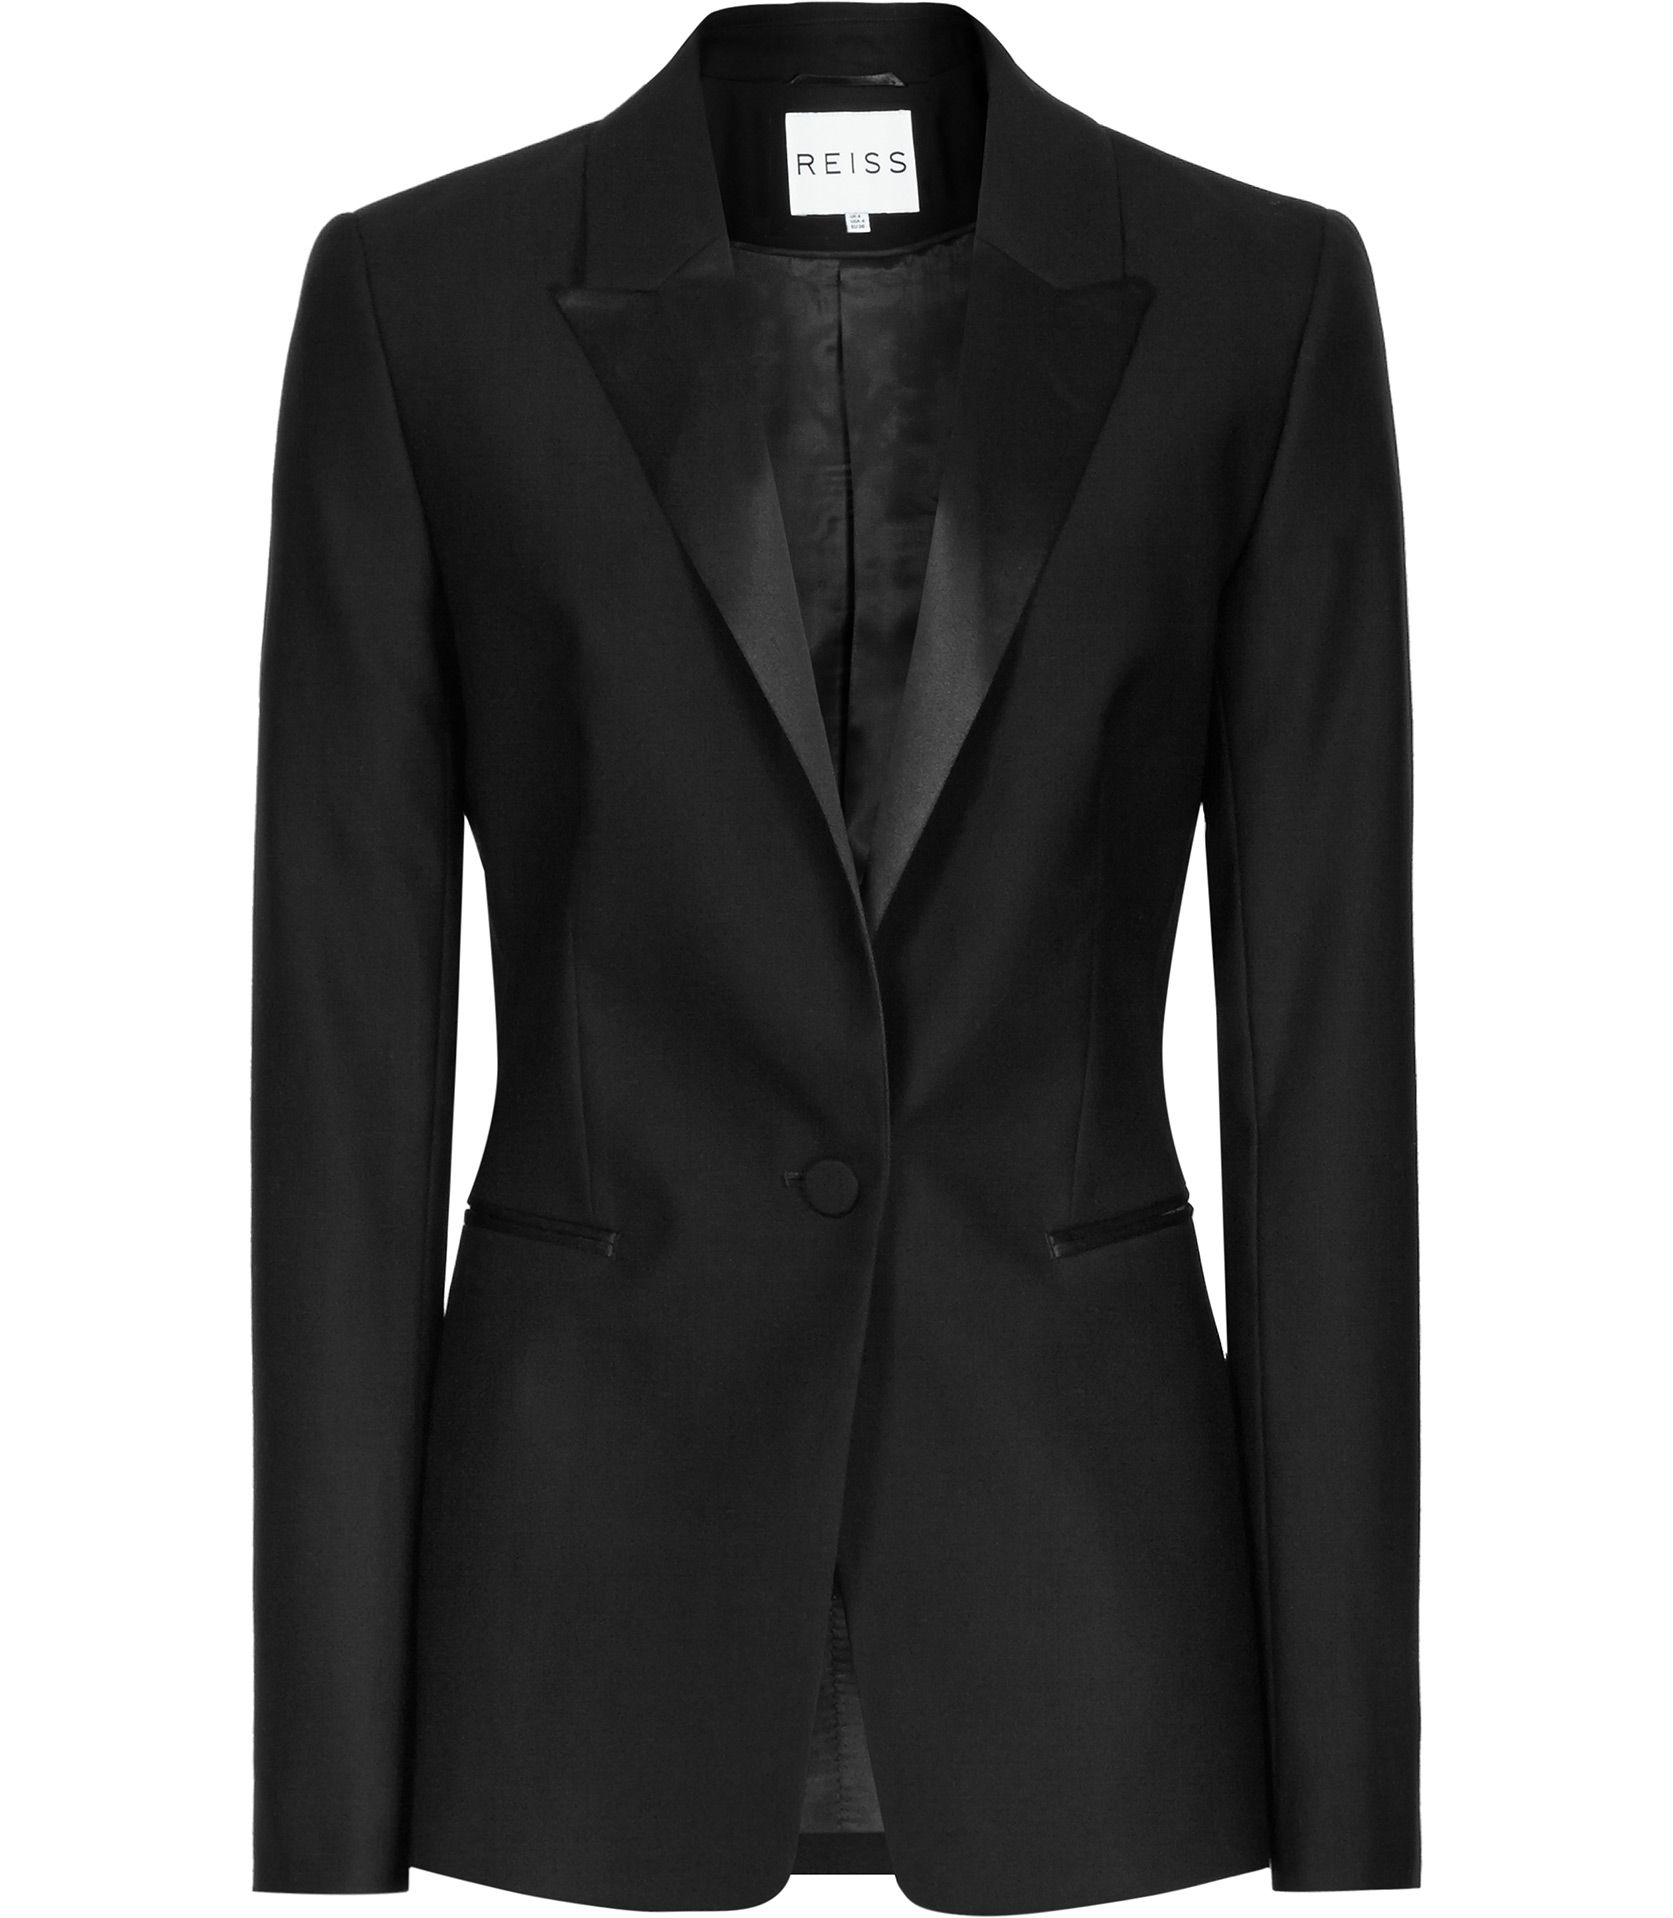 Sienna | Blazers, Reiss jackets and Reiss